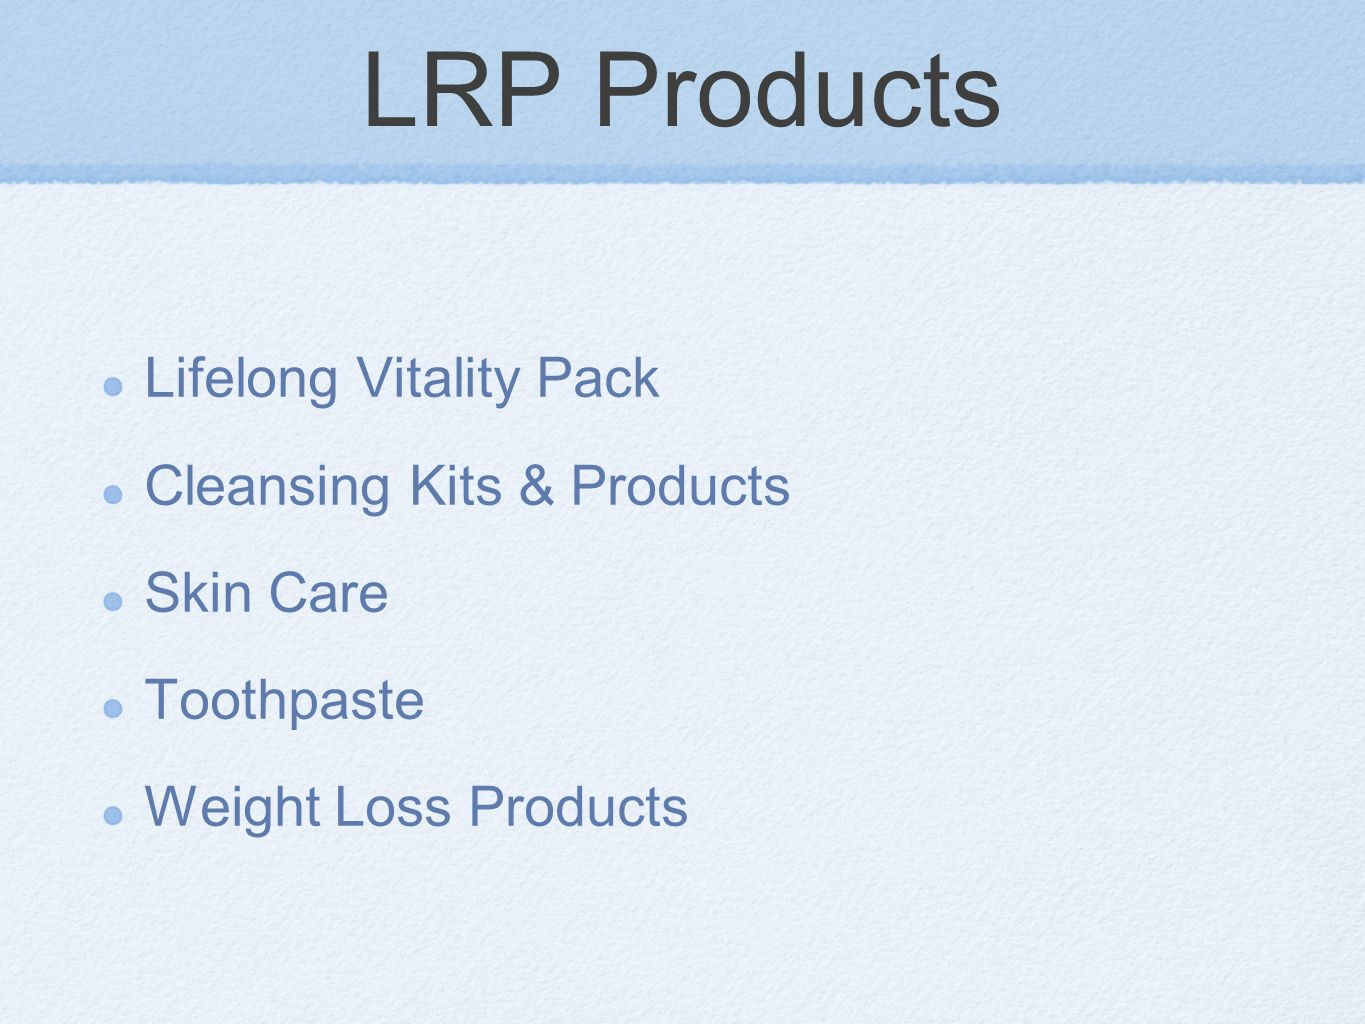 LRP Products Lifelong Vitality Pack Cleansing Kits & Products Skin Care Toothpaste Weight Loss Products